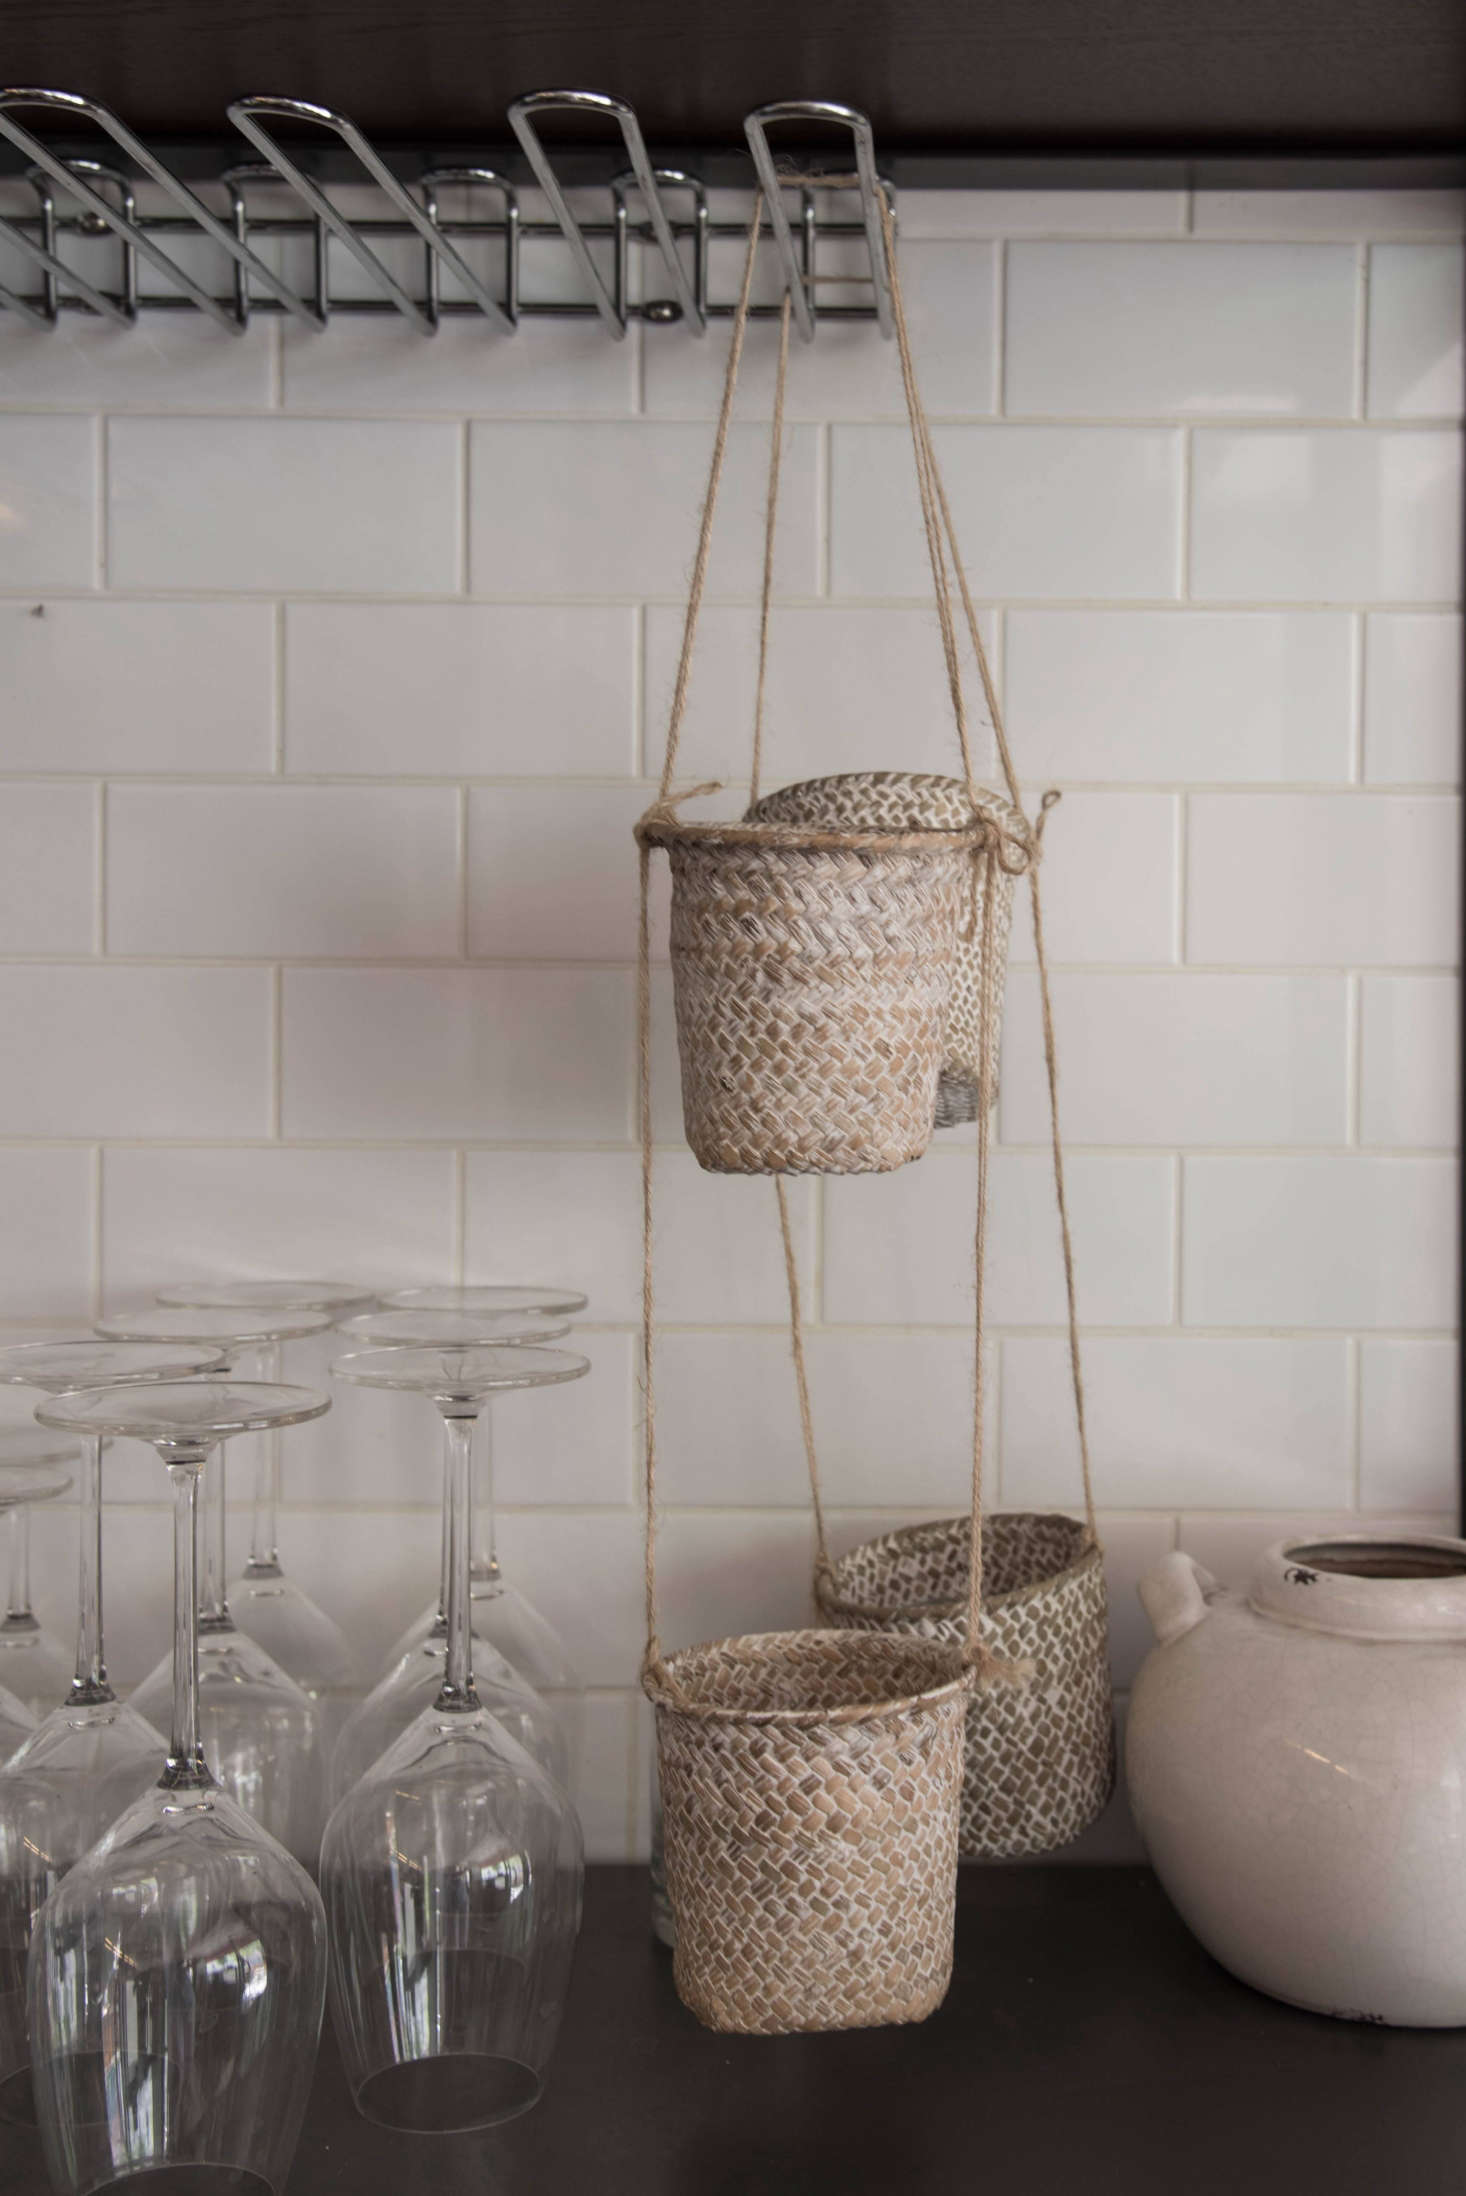 A Quartet Of Baskets From Maisons Du Monde. U201cThey Are Waiting For Me To